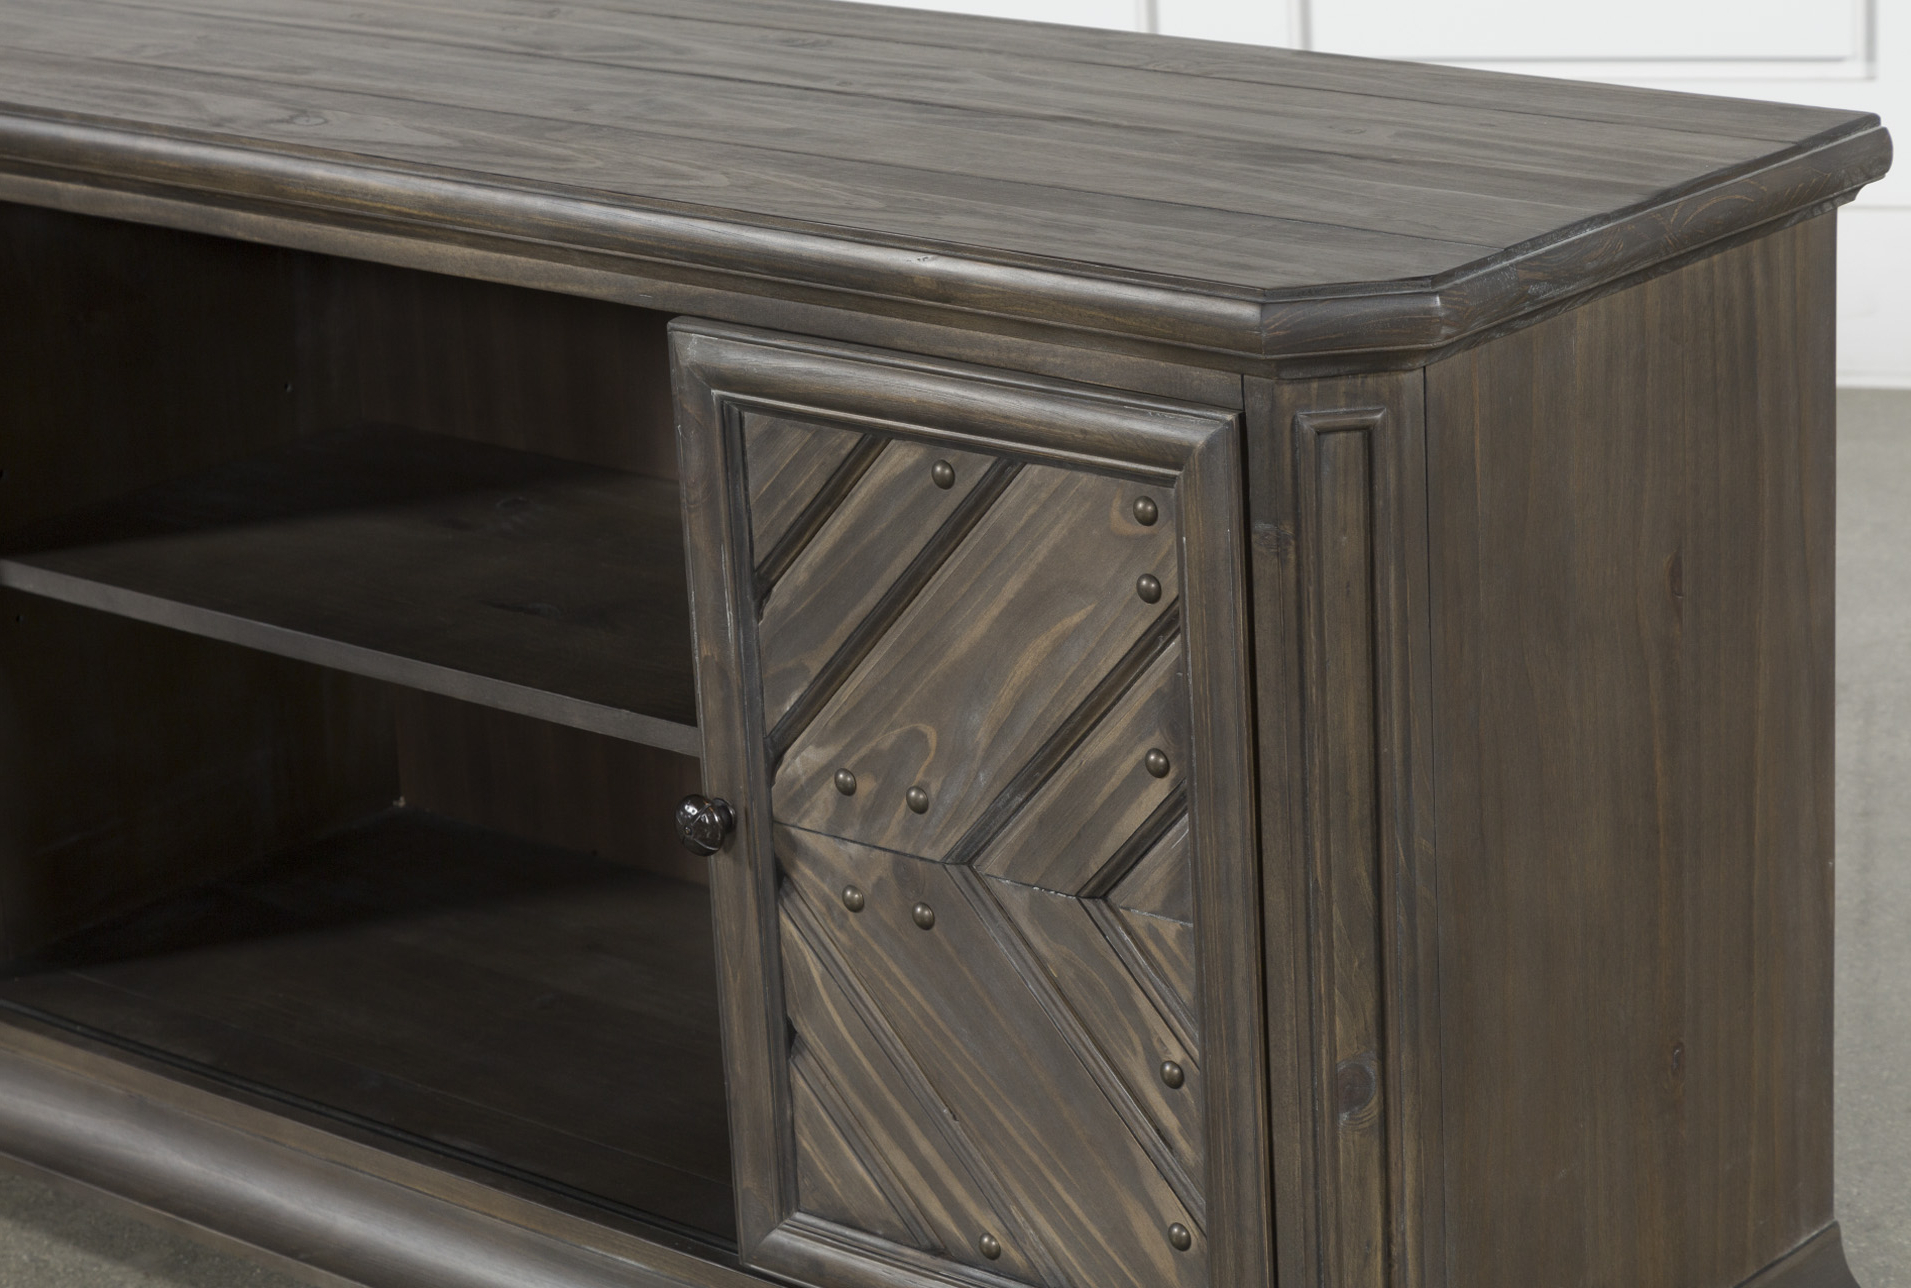 Laurent 70 Inch Tv Stand In 2018 | Products | Pinterest With Laurent 70 Inch Tv Stands (View 2 of 20)